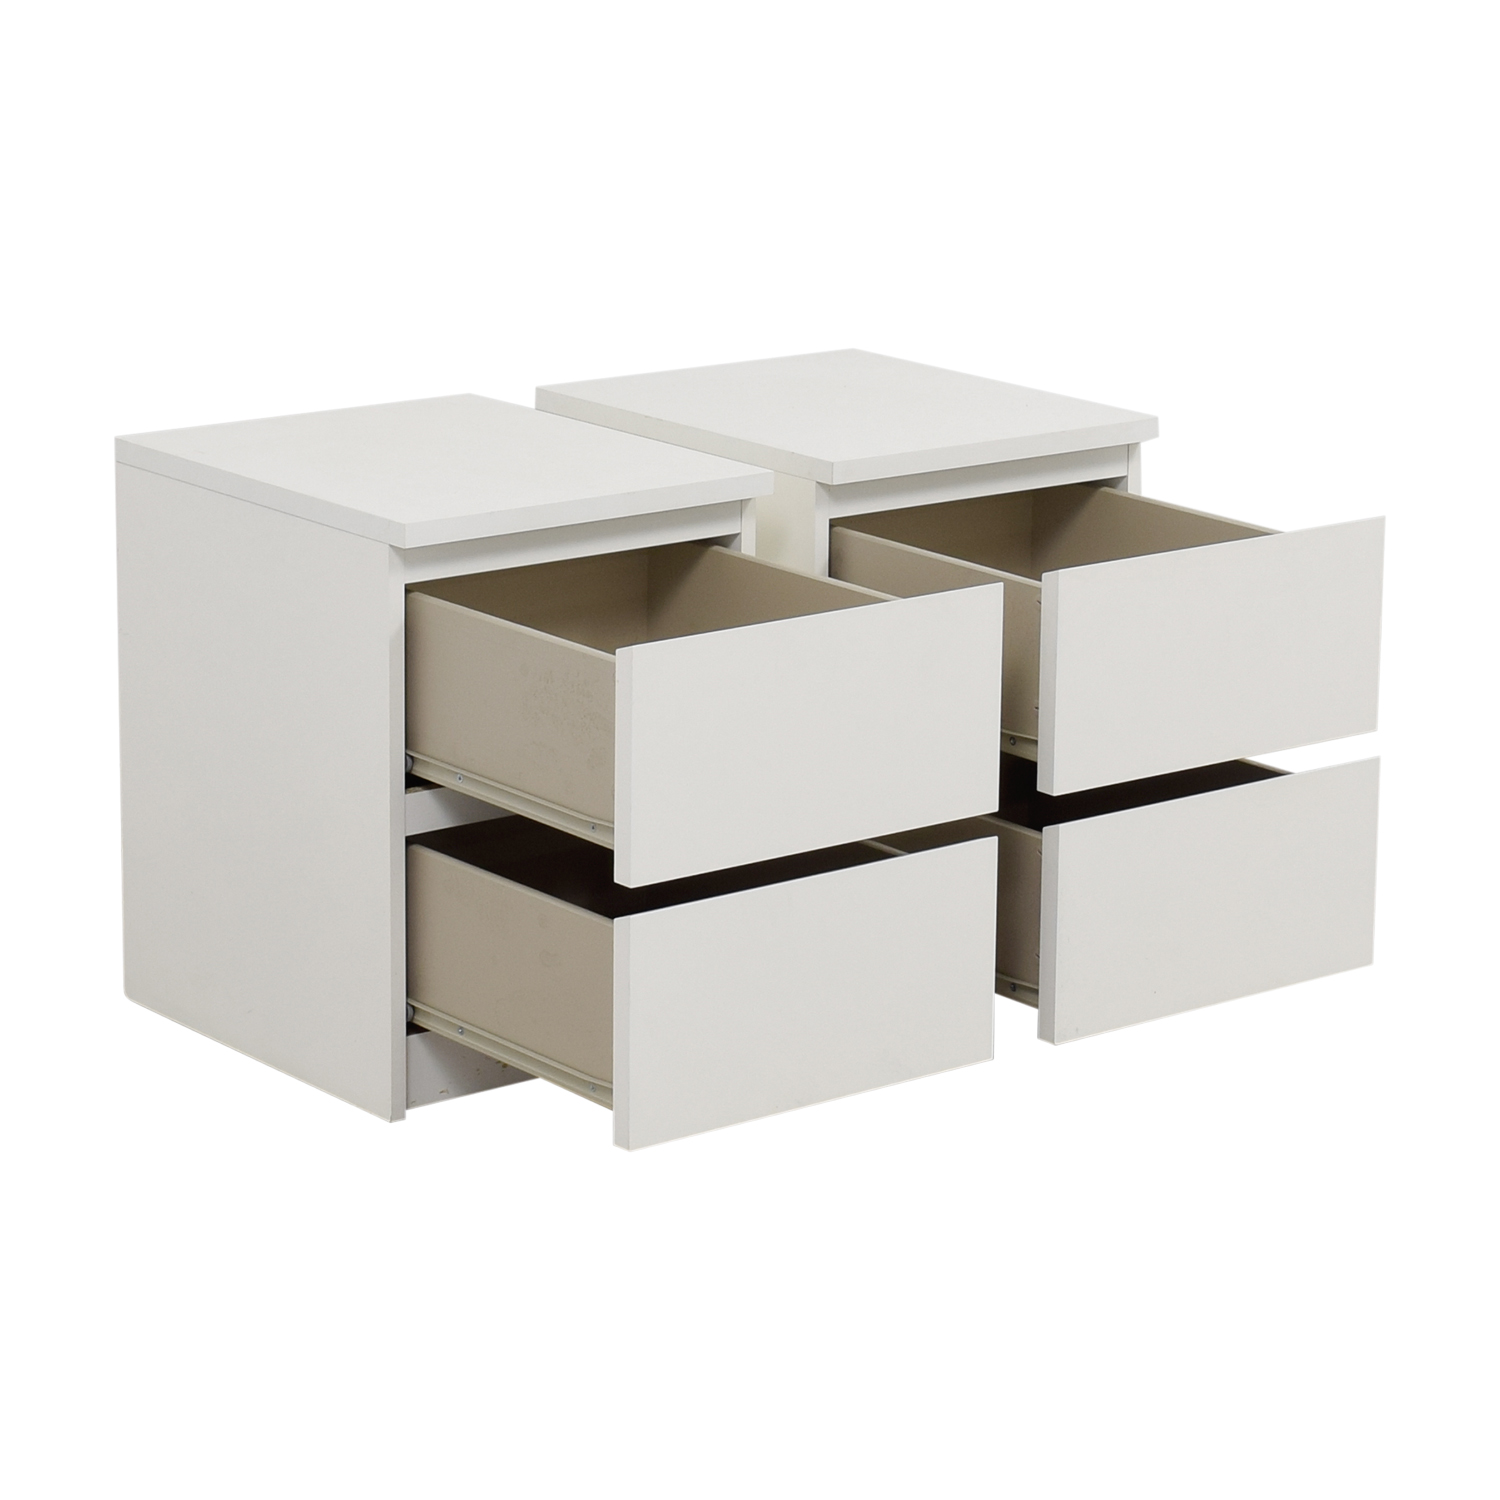 IKEA IKEA White Two-Drawer End Tables / Tables